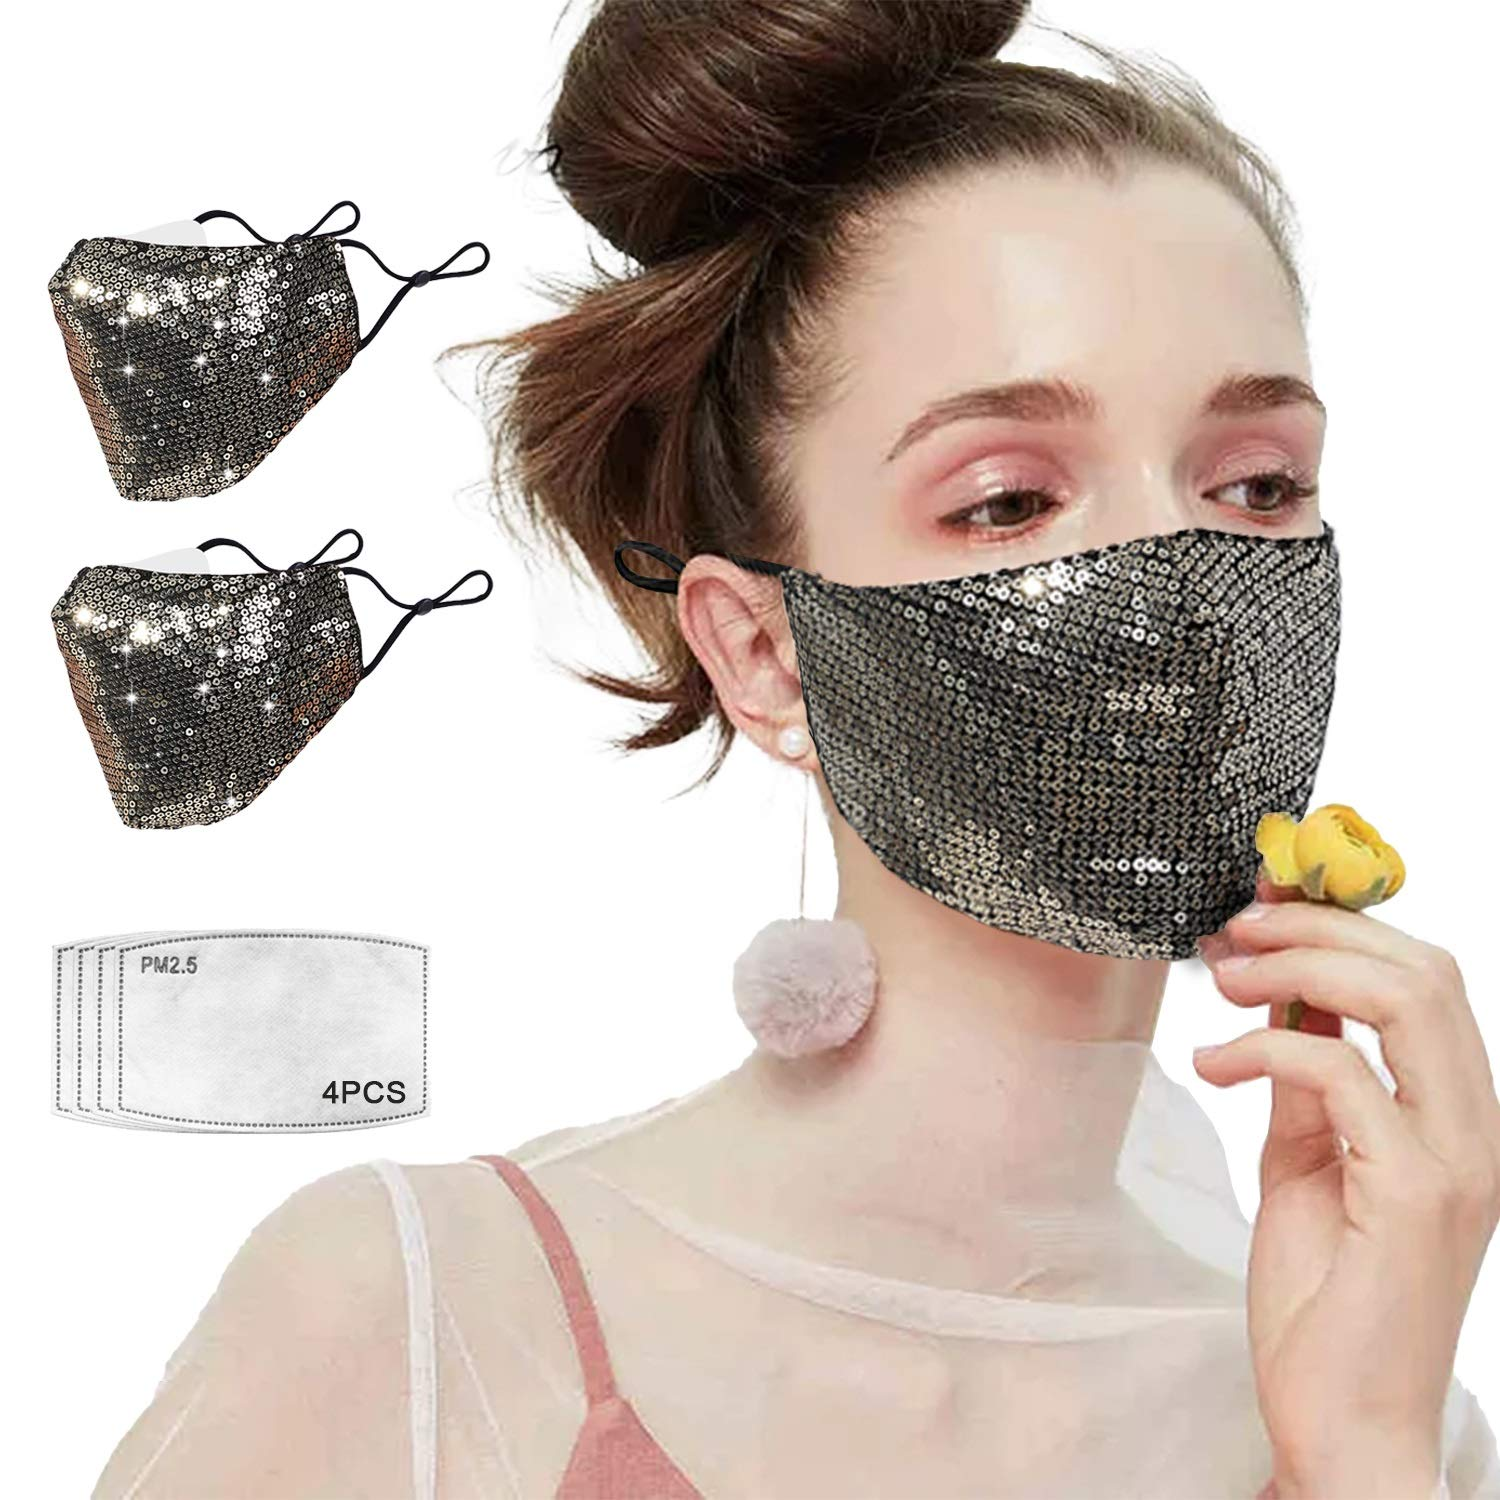 2PCS Sparkly Sequin Face Mouth Mask for Women Girls, Cotton Decorative Party Bling Face Protective Masks with Designs, Shiny Glitter Face Cover Mask with Adjustable Ear Loops with 4 Filters(Gold)